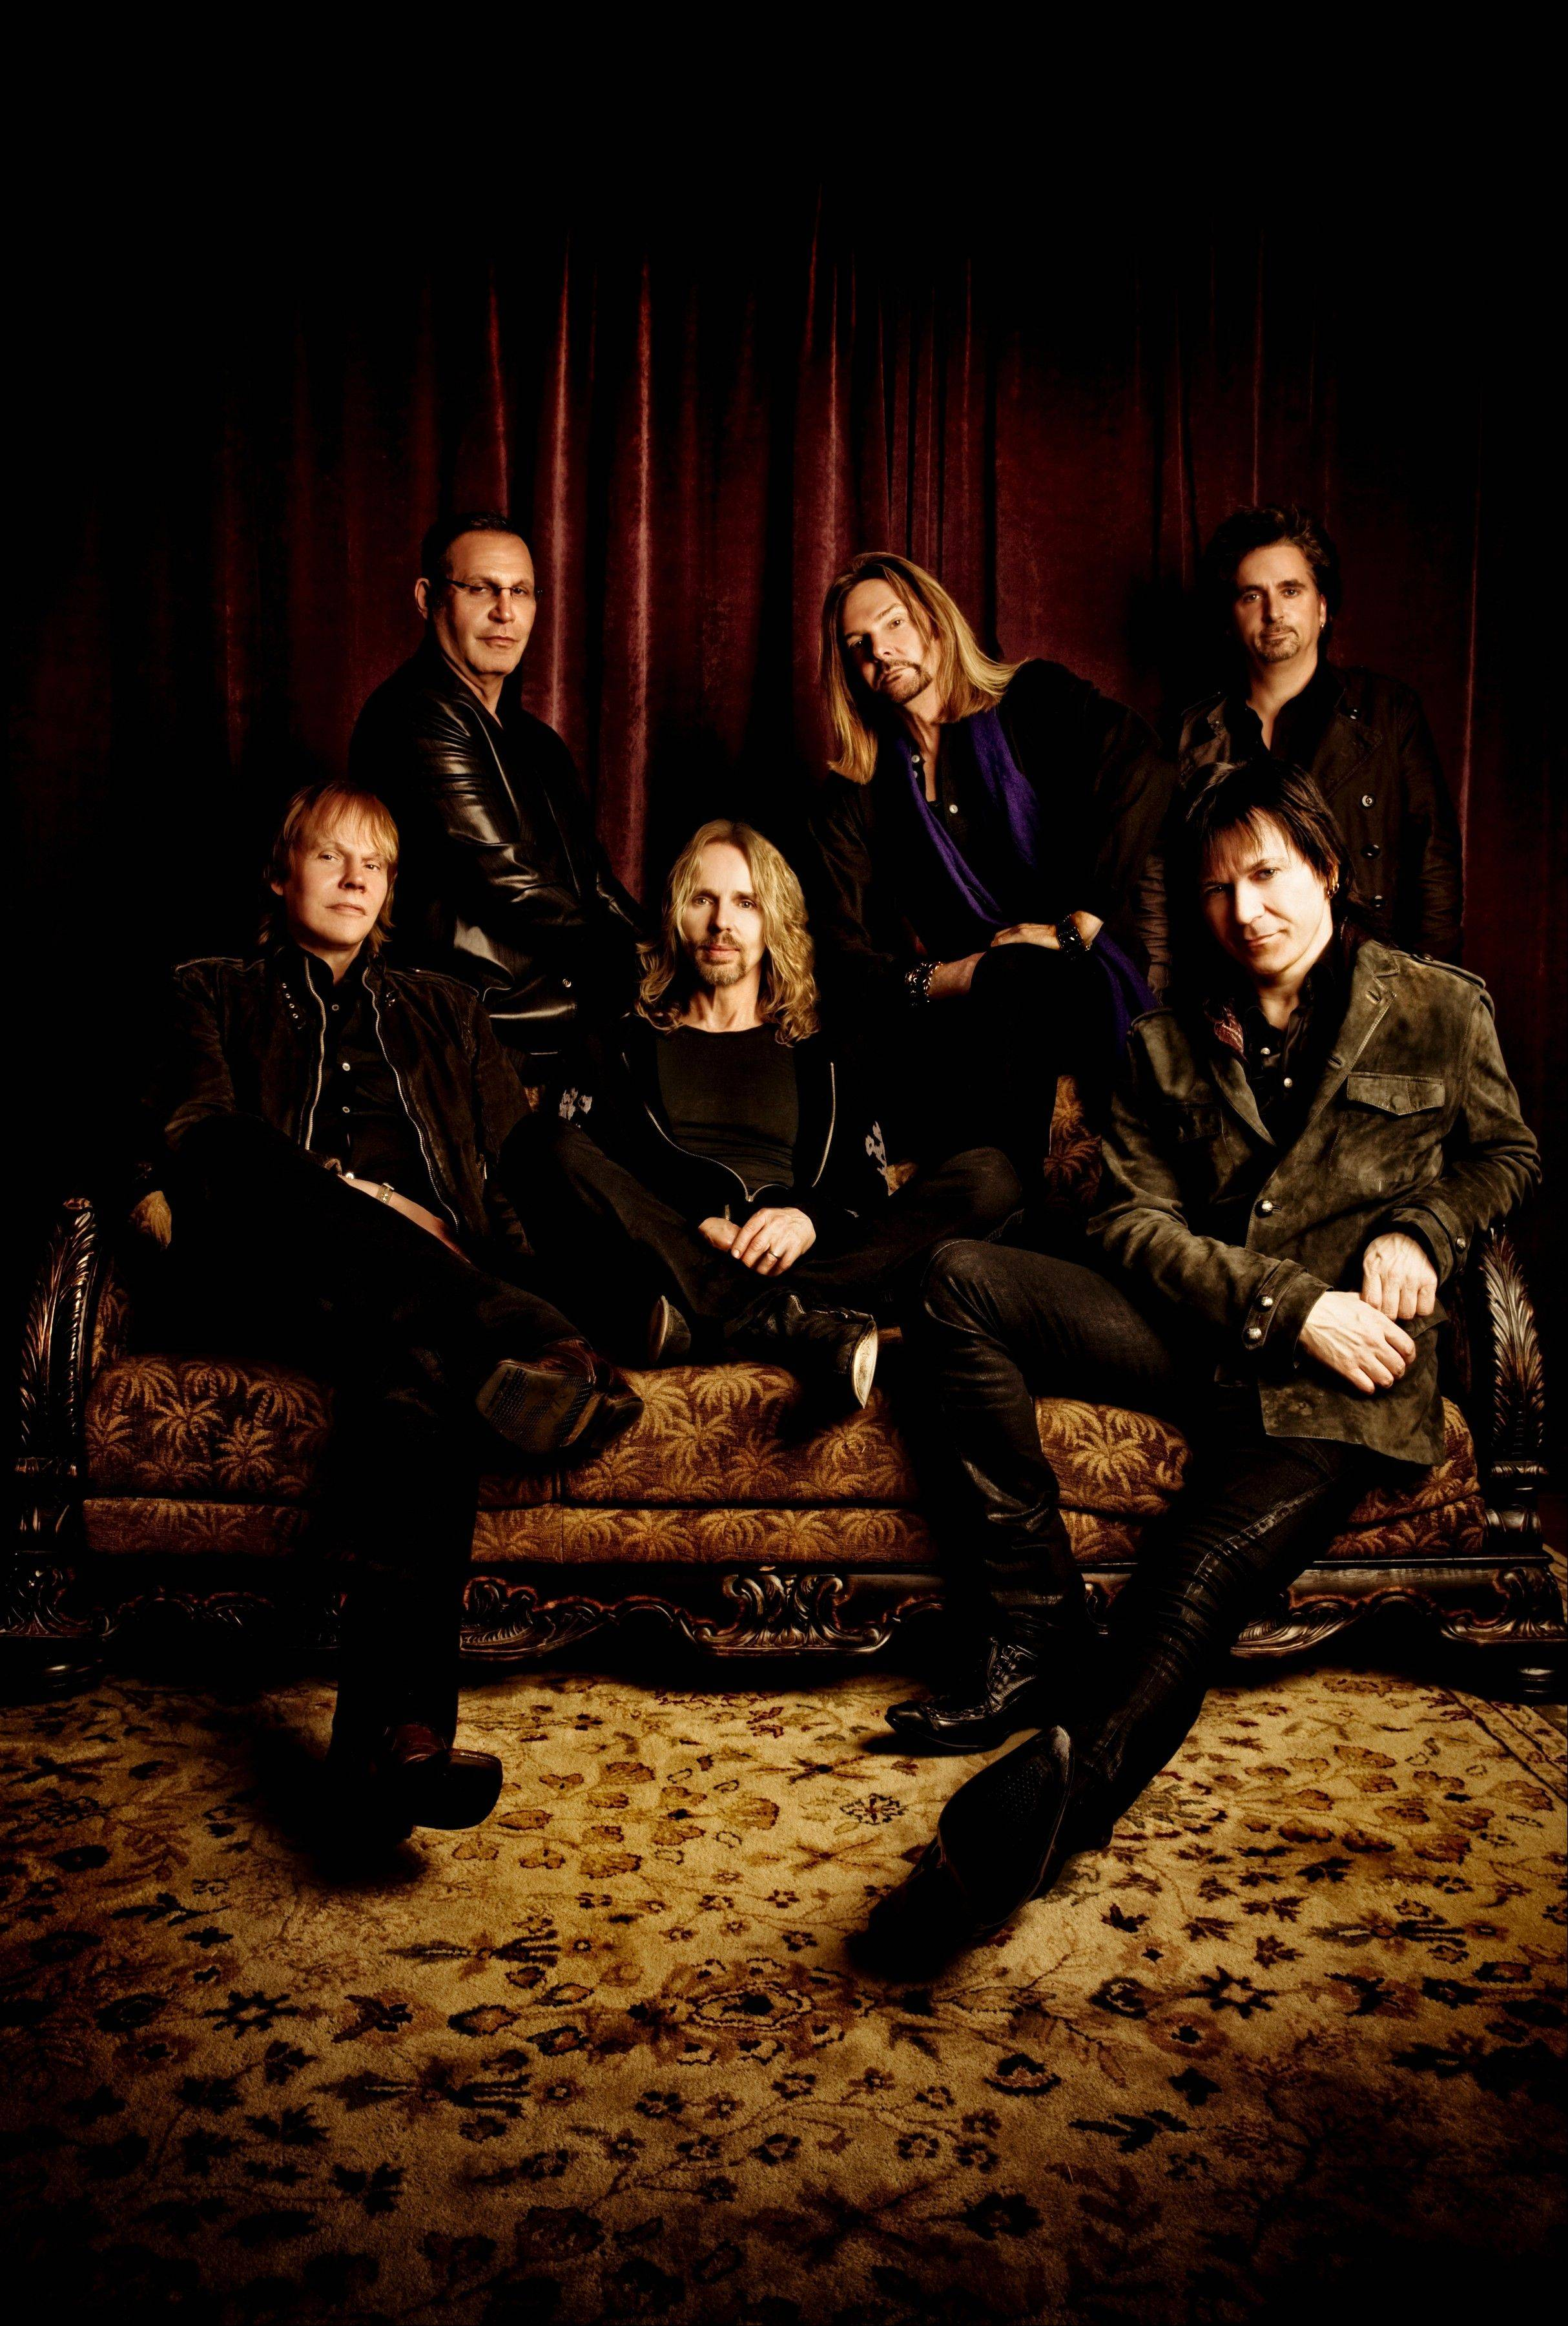 Styx will perform Aug. 10 at the Illinois State Fair.